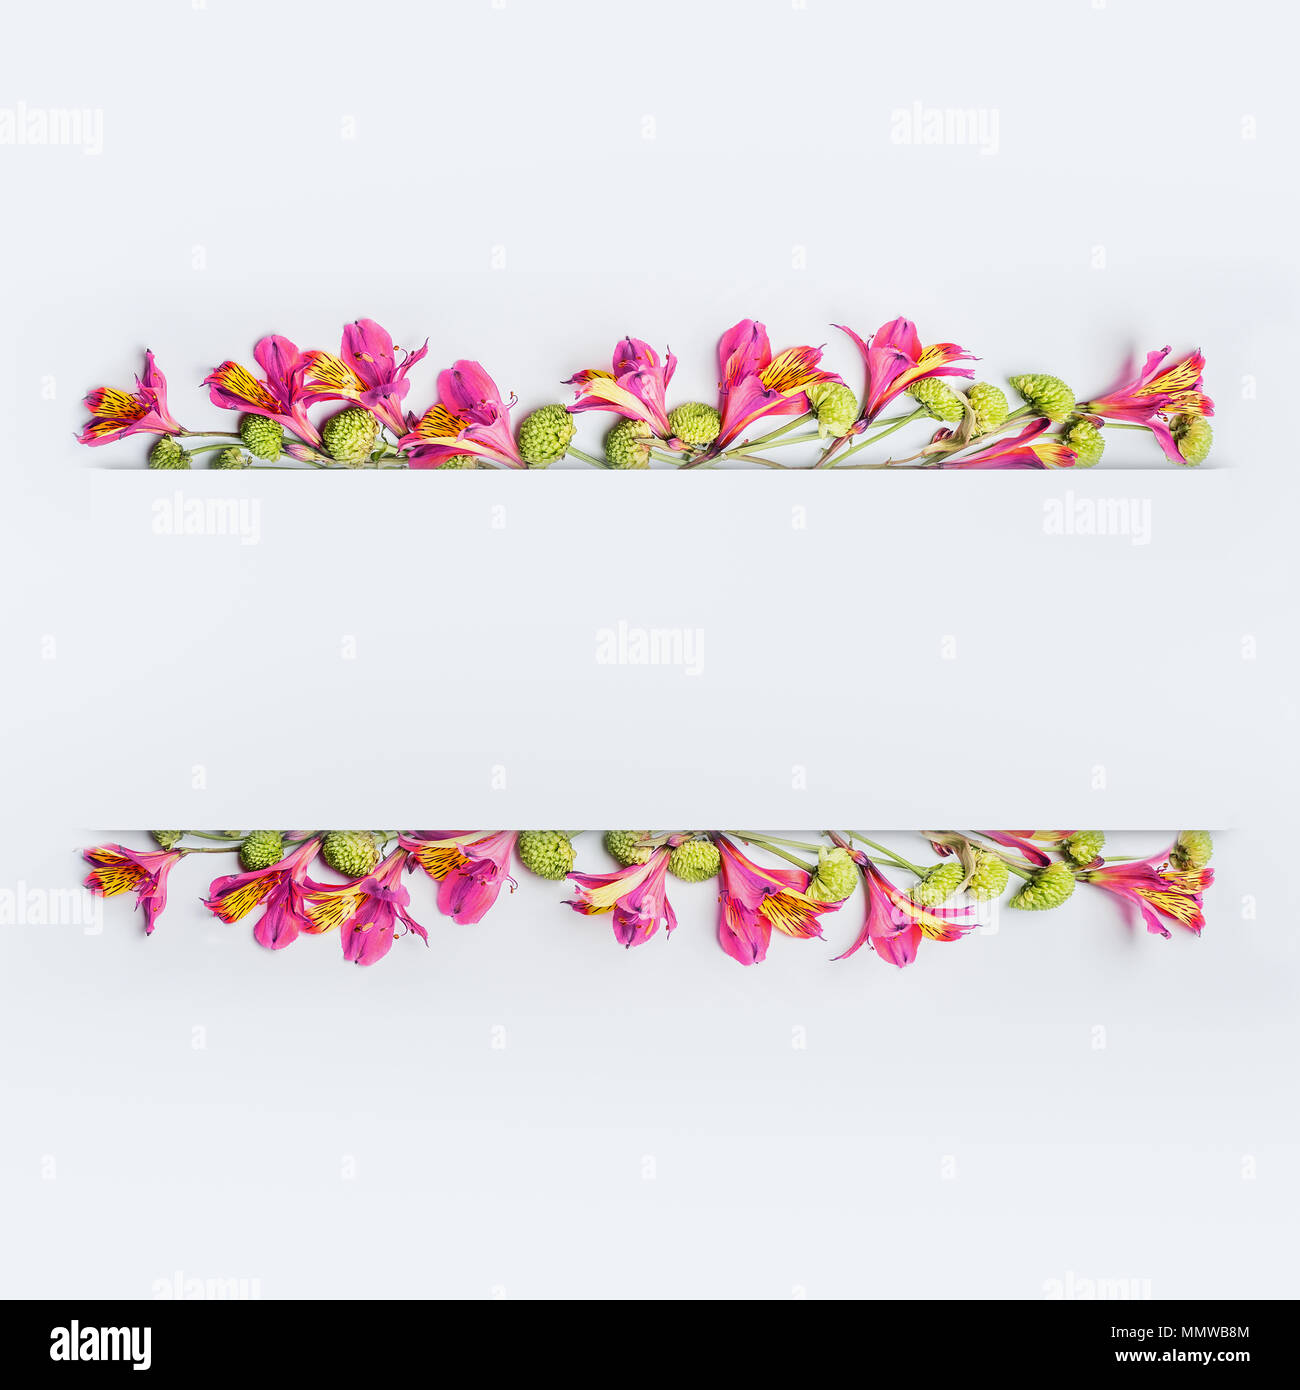 Creative Floral Design Frame Border Or Banner Layout With Pink And